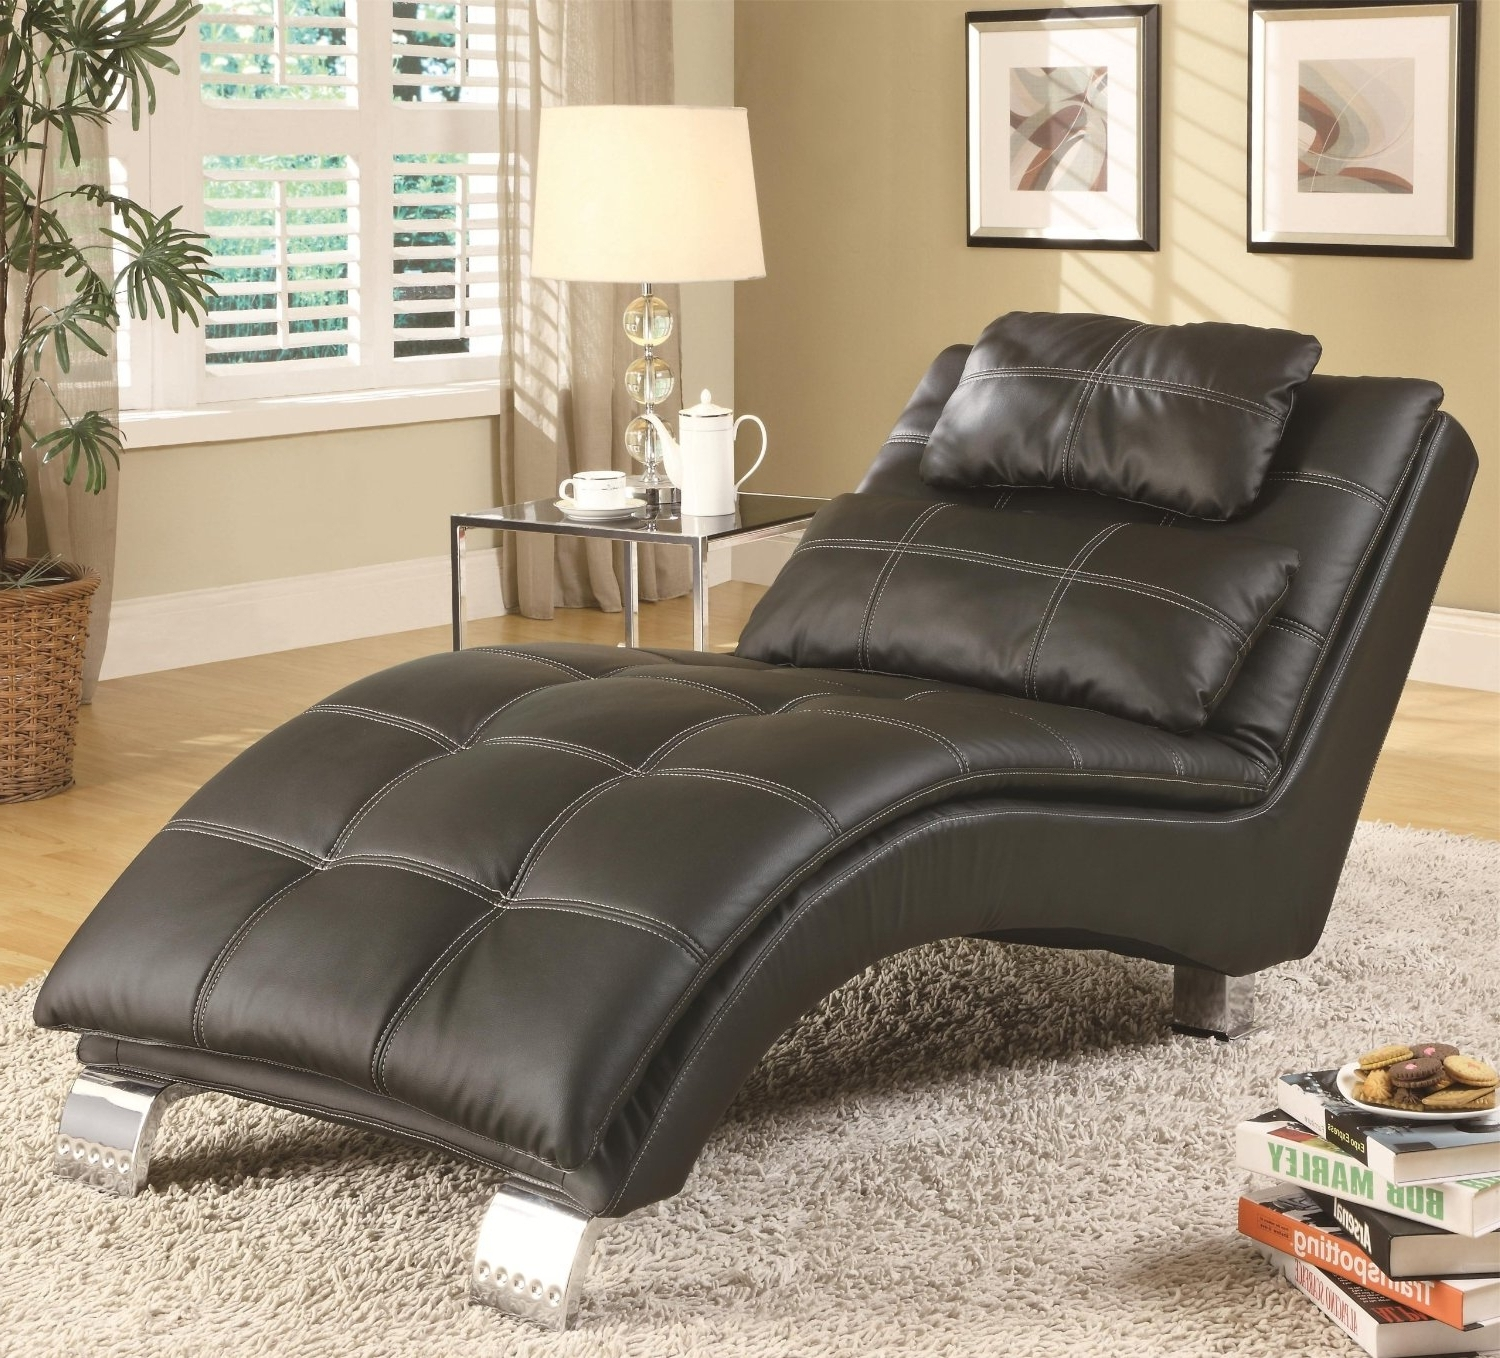 Widely Used Chaise Lounge Chair Indoor • Lounge Chairs Ideas Regarding Modern Indoors Chaise Lounge Chairs (View 13 of 15)